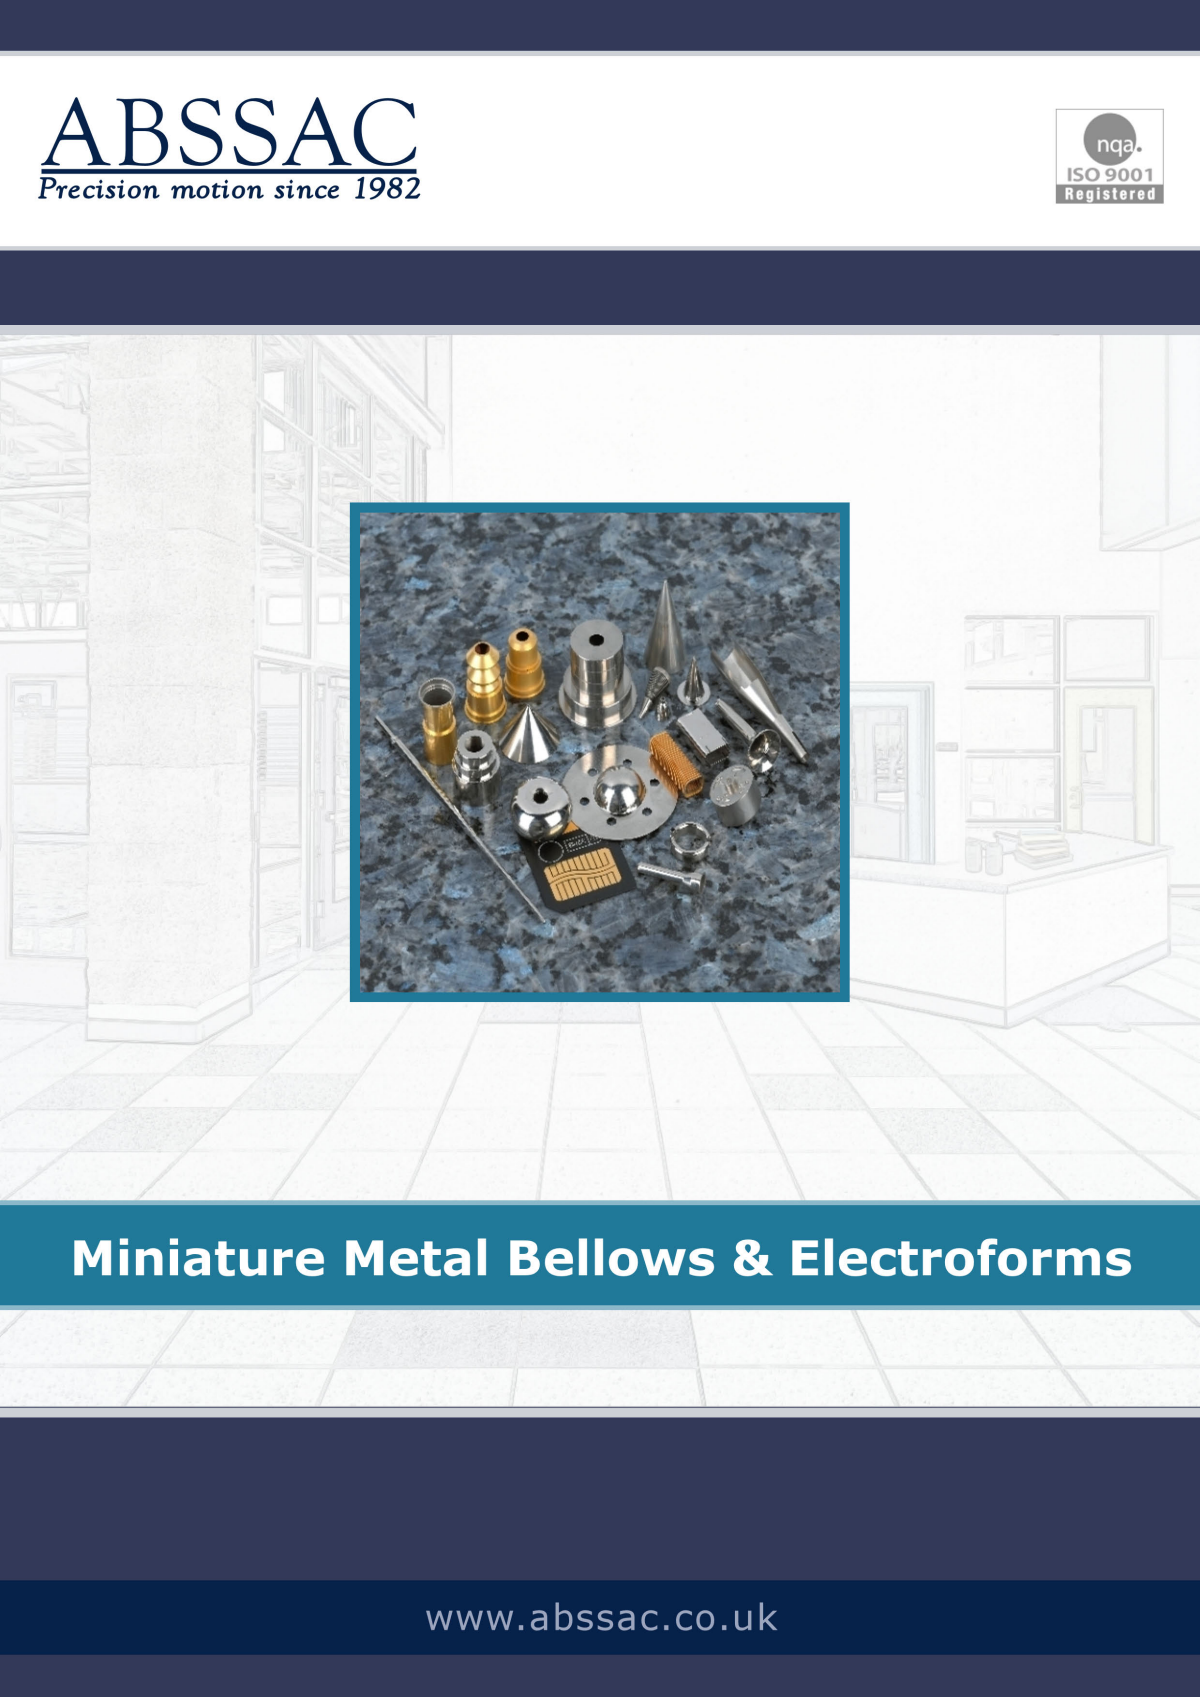 Miniature Metal Bellows & Electroforms Page 11